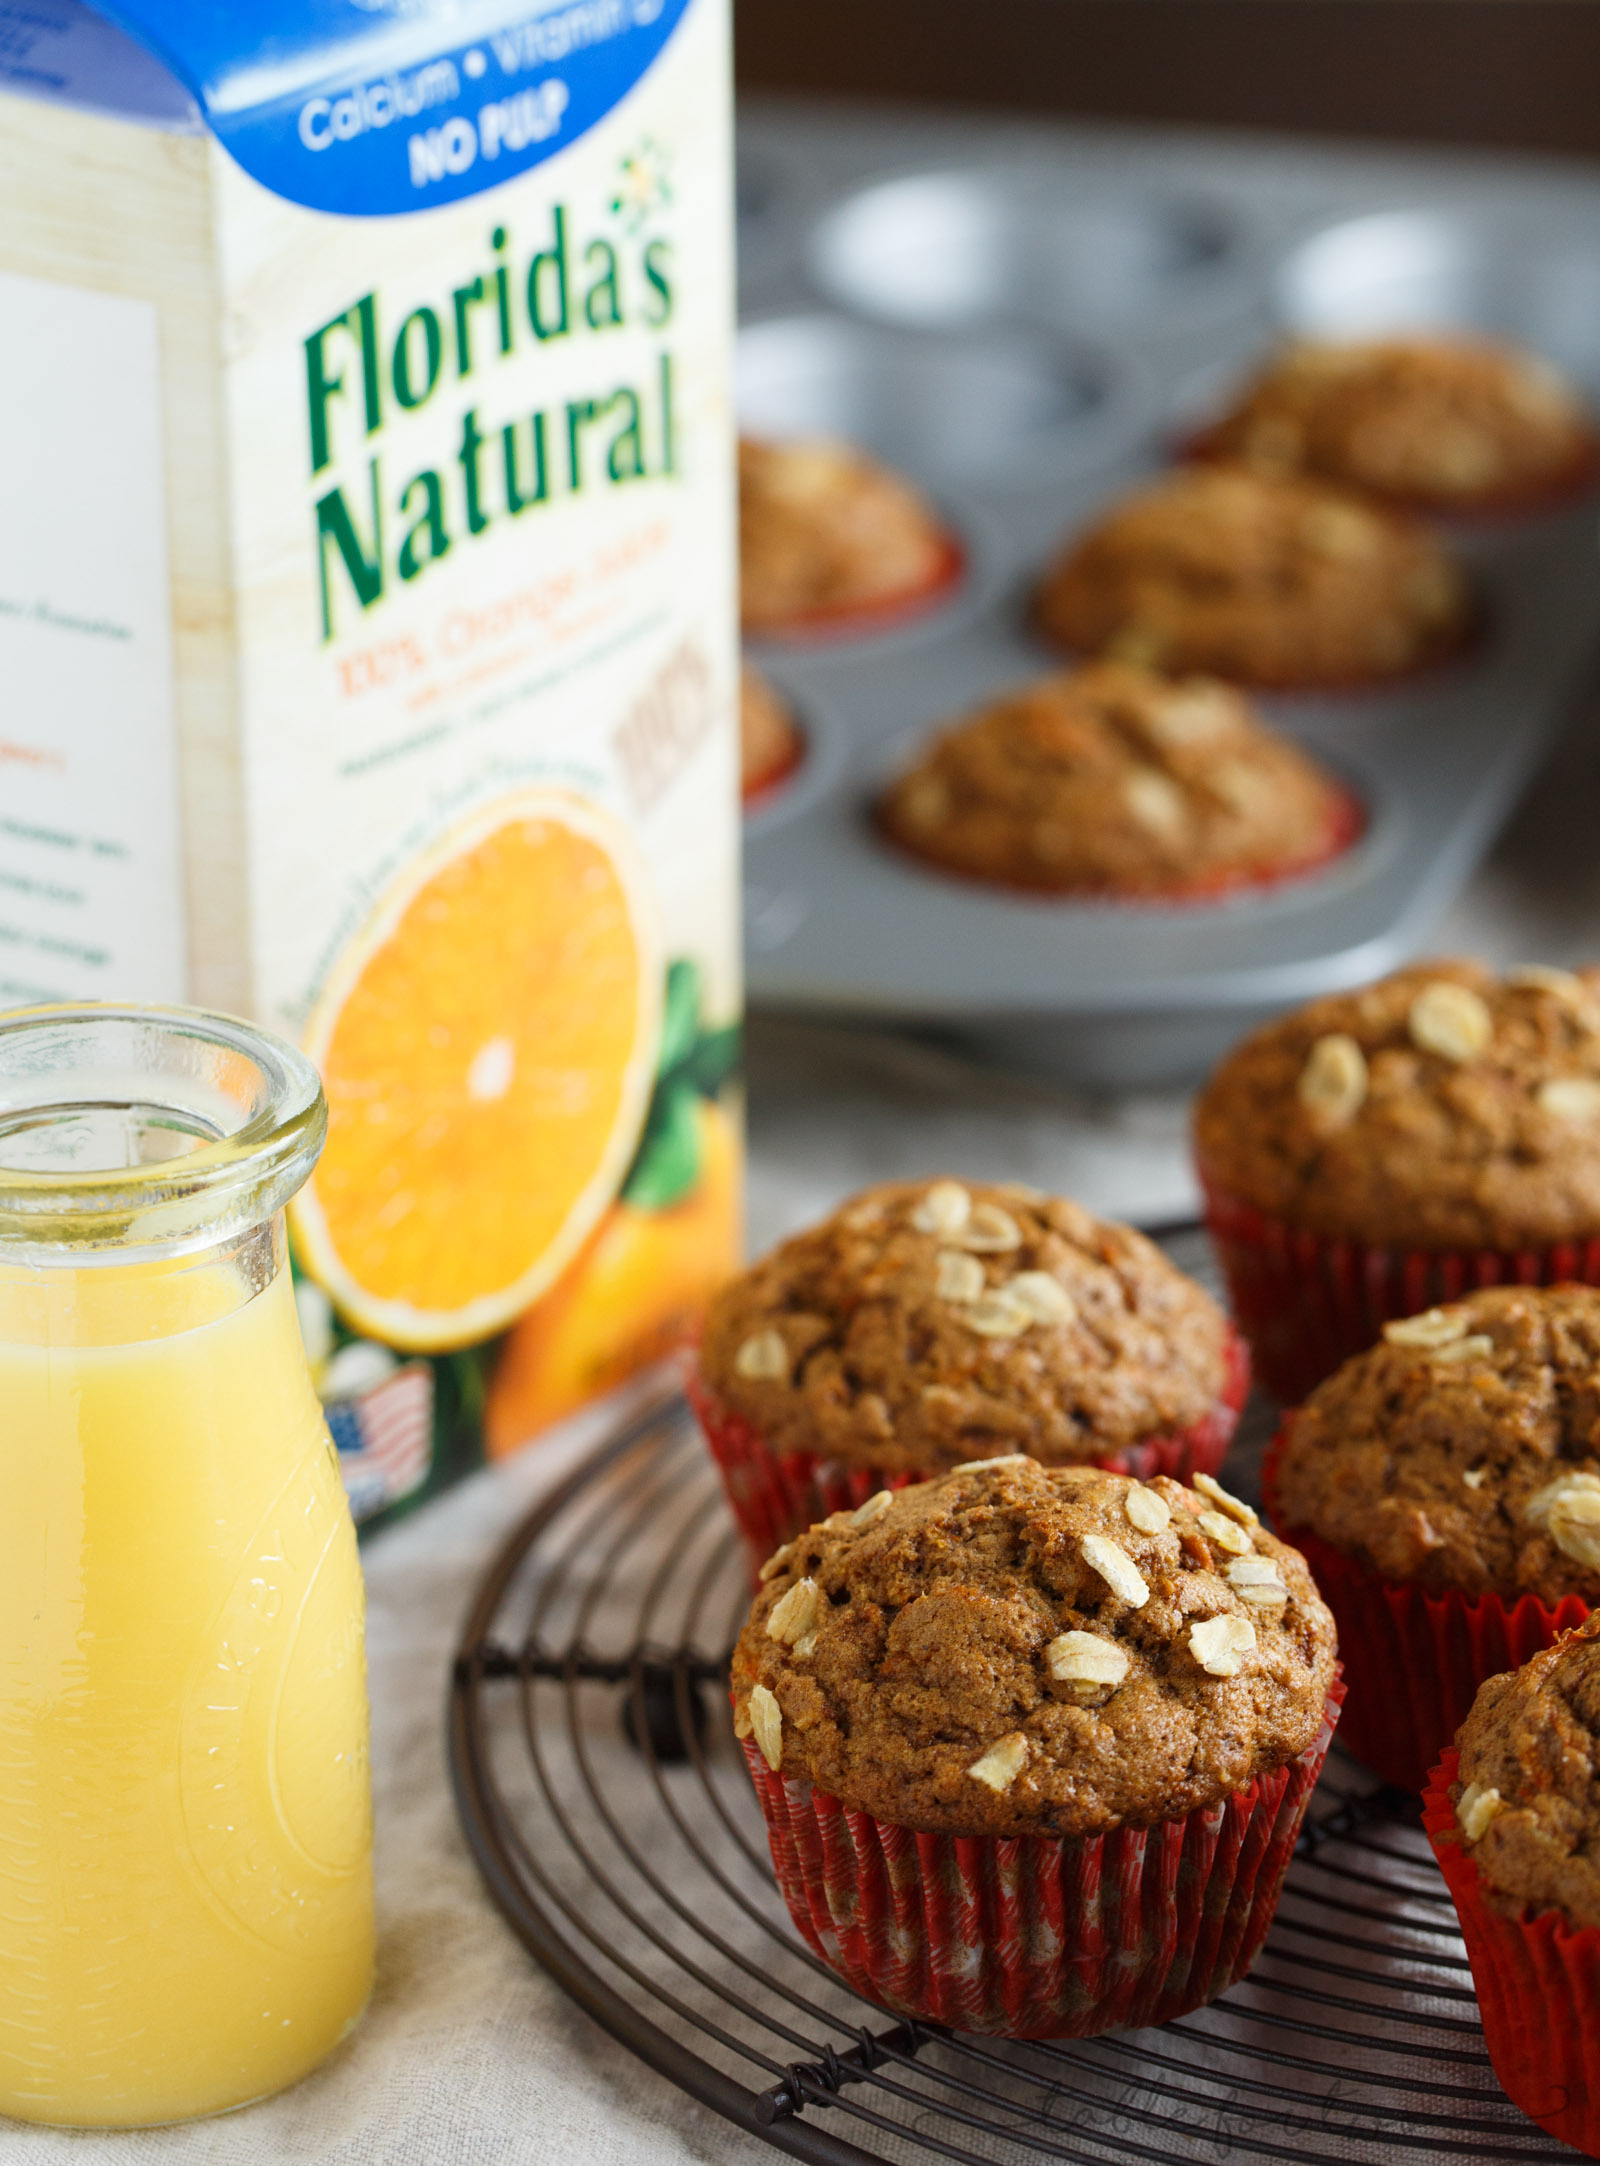 Incredibly flavorful, moist, and fluffy muffins for a quick on-the-go breakfast! Warm spices, orange and carrots make this spiced orange and carrot whole wheat muffin so tender and full of healthy goodness for your mornings! In partnership with #FloridasNatural. #ad